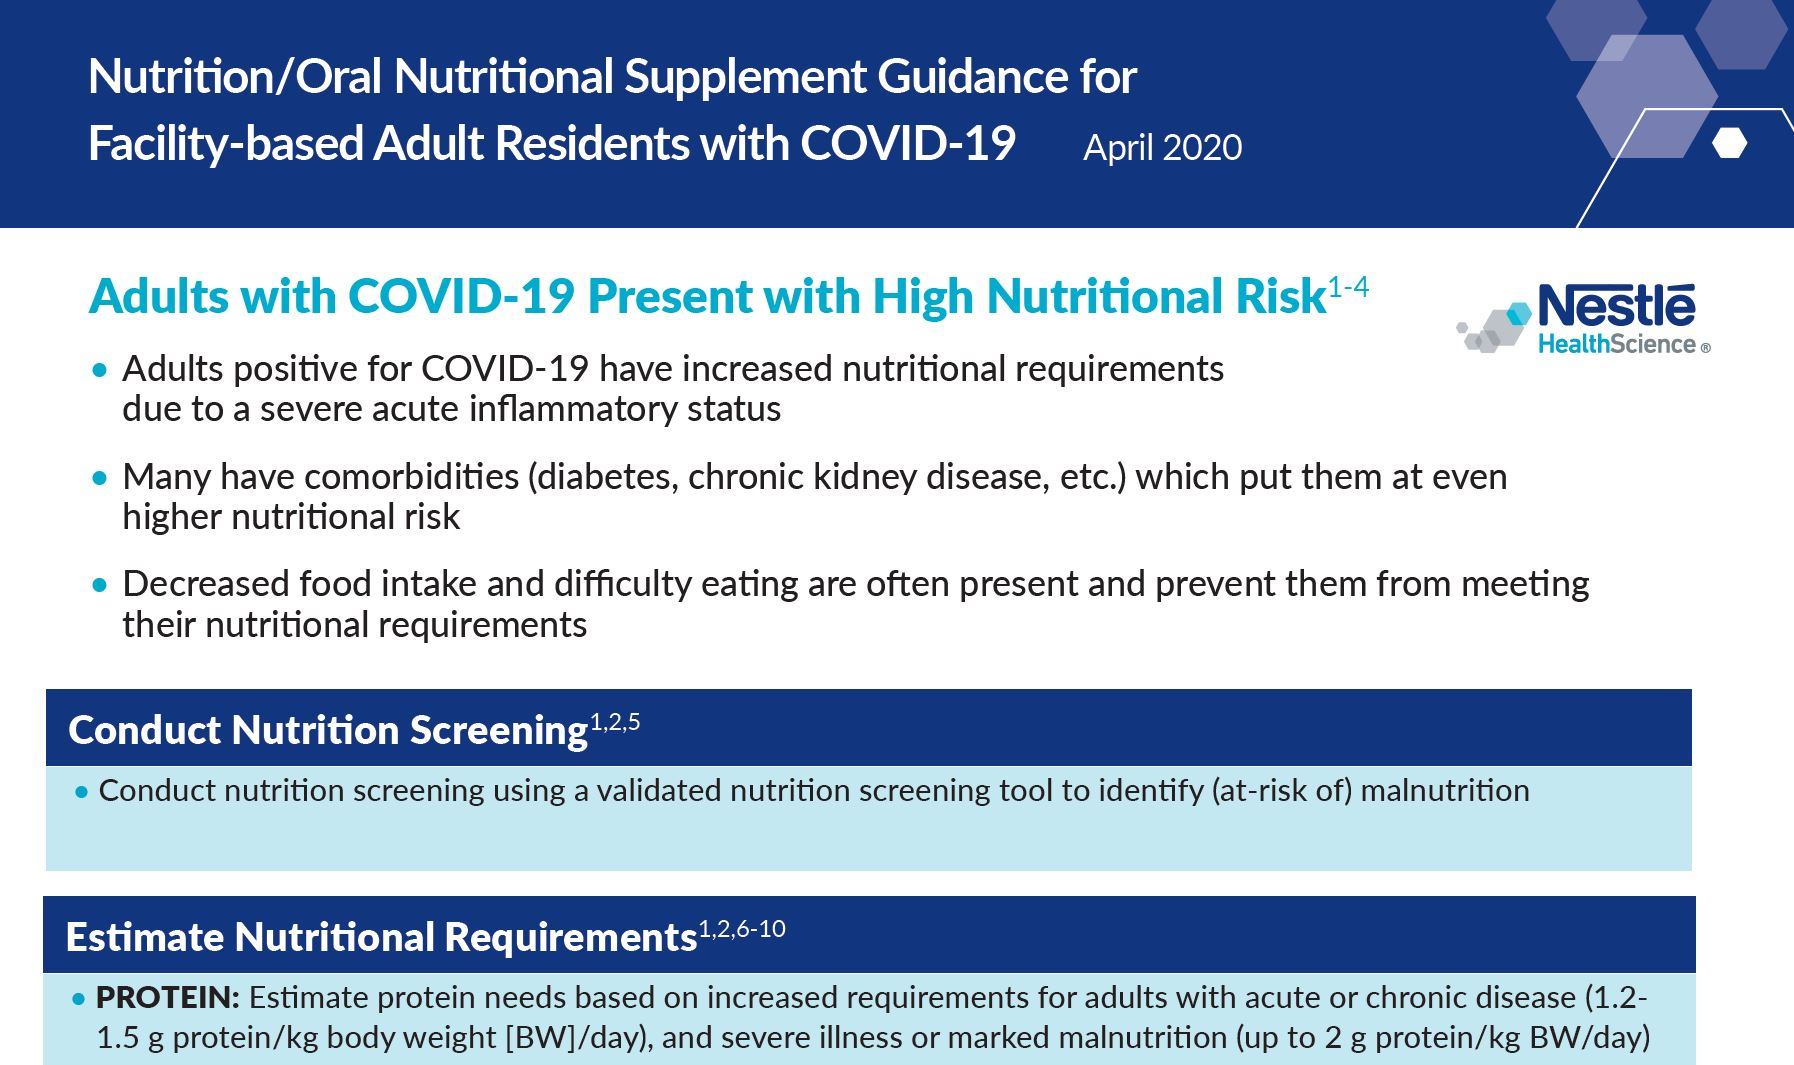 Nutrition/ONS Guidance for Facility-Based Adult Residents with COVID-19